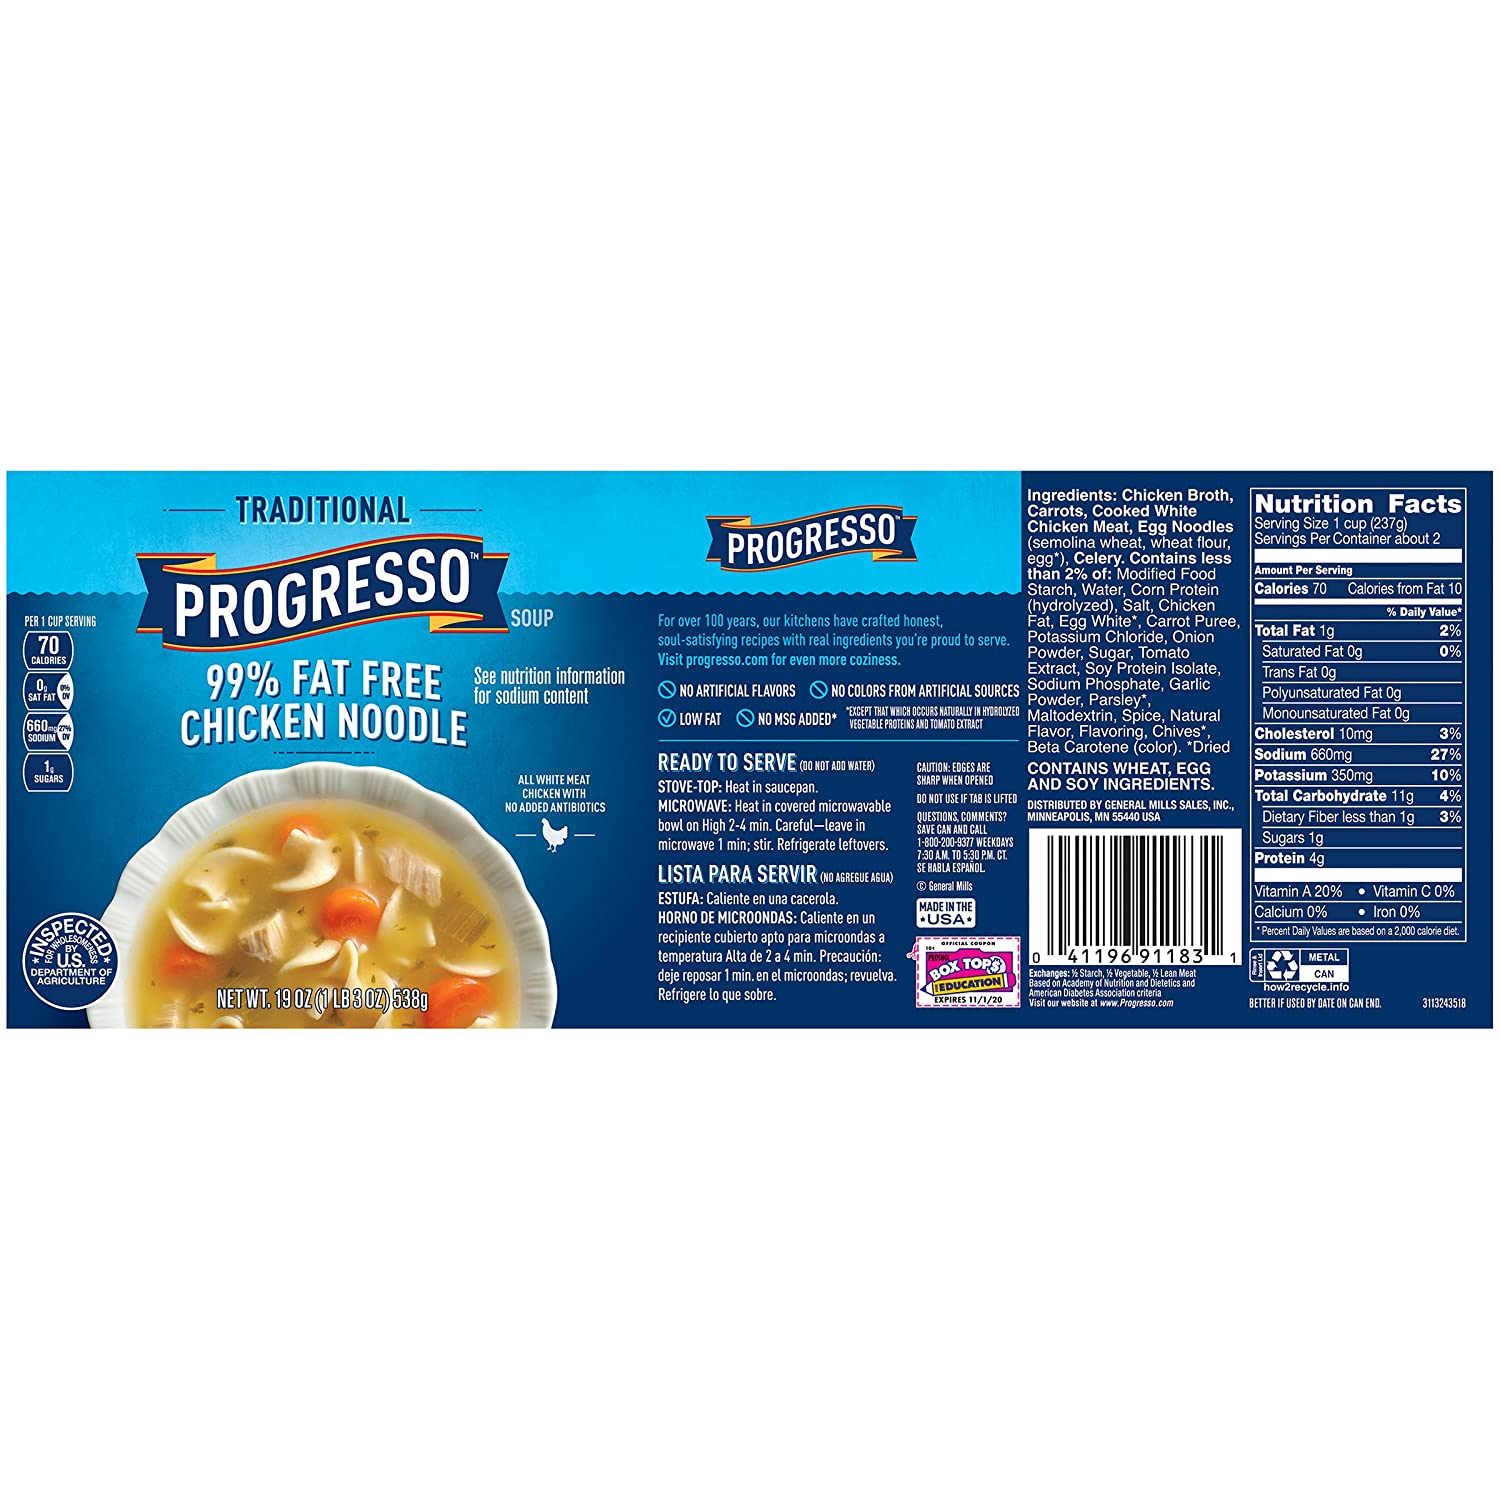 Progresso Soup, Traditional, 99% Fat Free Chicken Noodle Soup, 19 oz Can